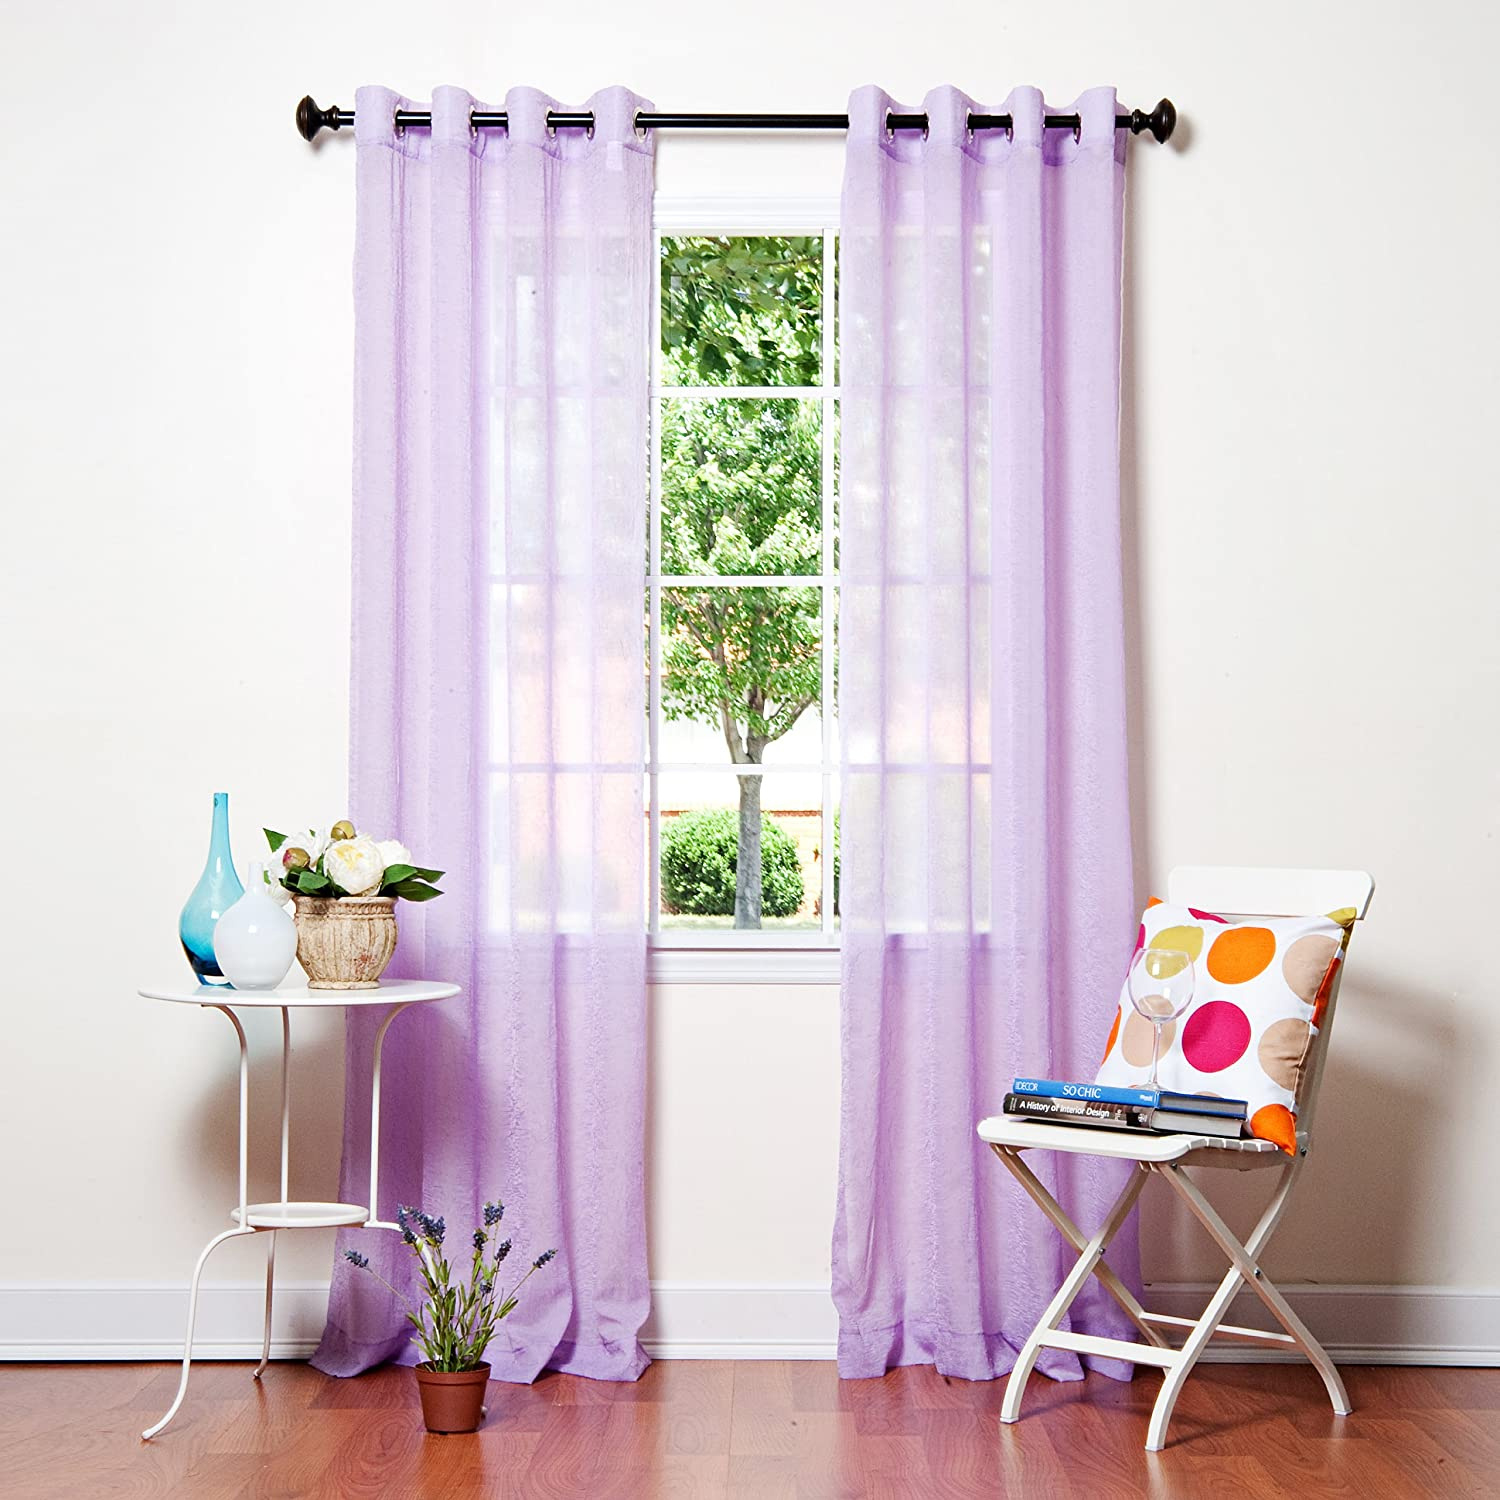 Amazon.com: Best Home Fashion Crushed Voile Sheer Curtains - Antique ... for Sheer Lavender Curtains  545xkb